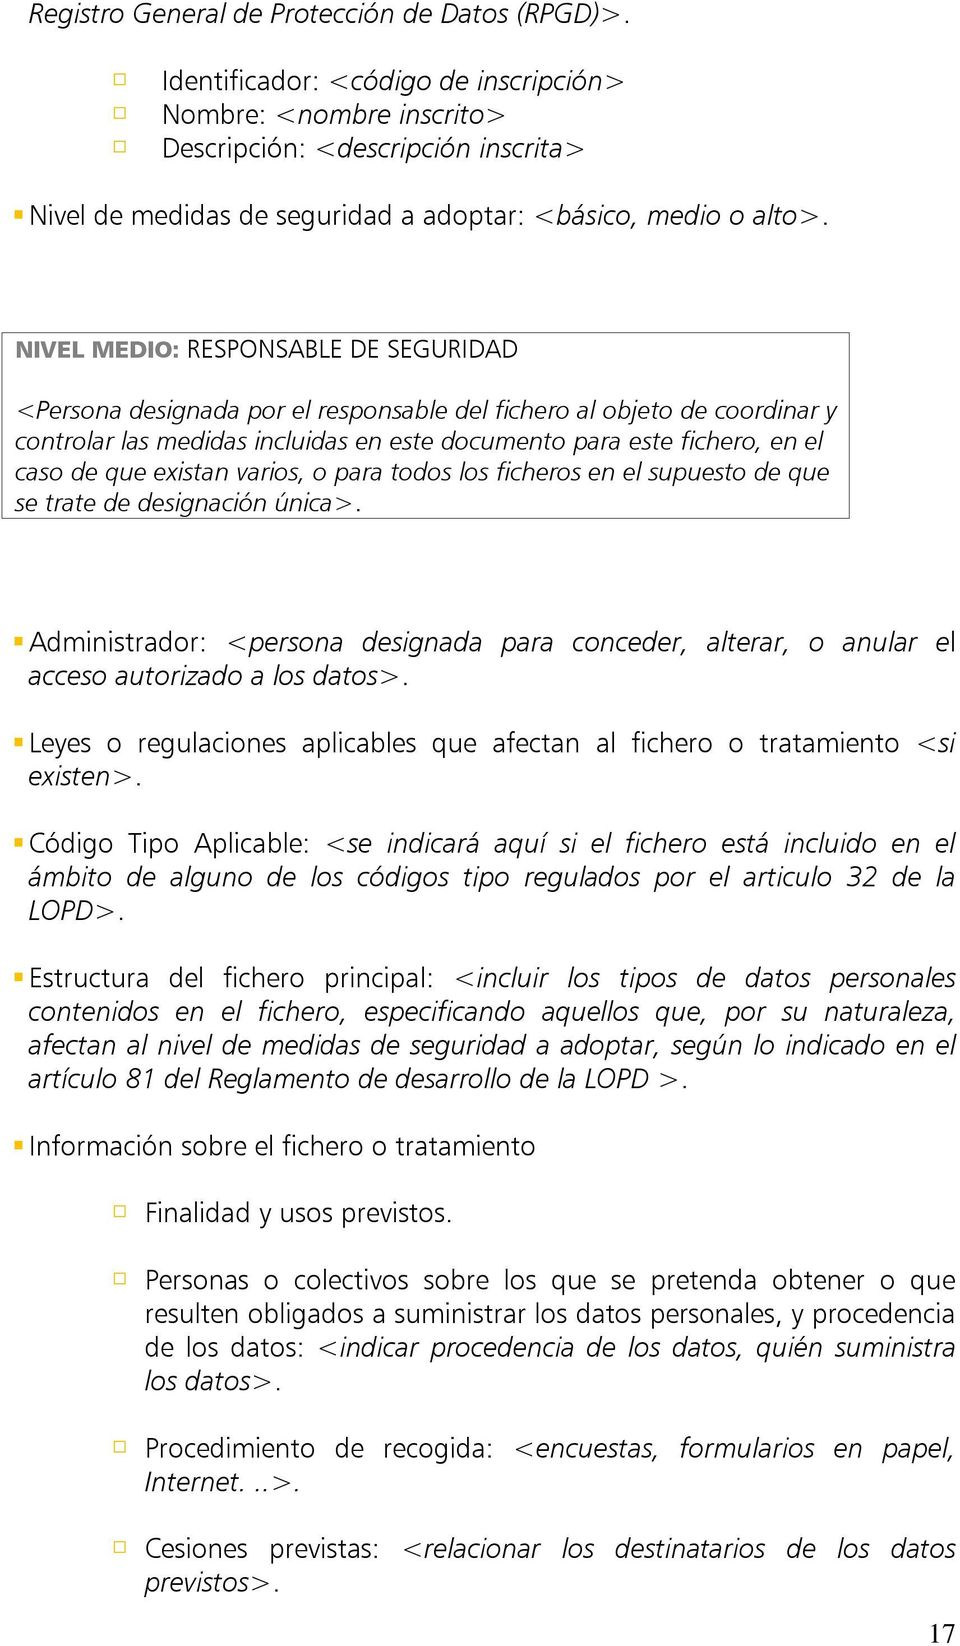 NIVEL MEDIO: RESPONSABLE DE SEGURIDAD <Persona designada por el responsable del fichero al objeto de coordinar y controlar las medidas incluidas en este documento para este fichero, en el caso de que